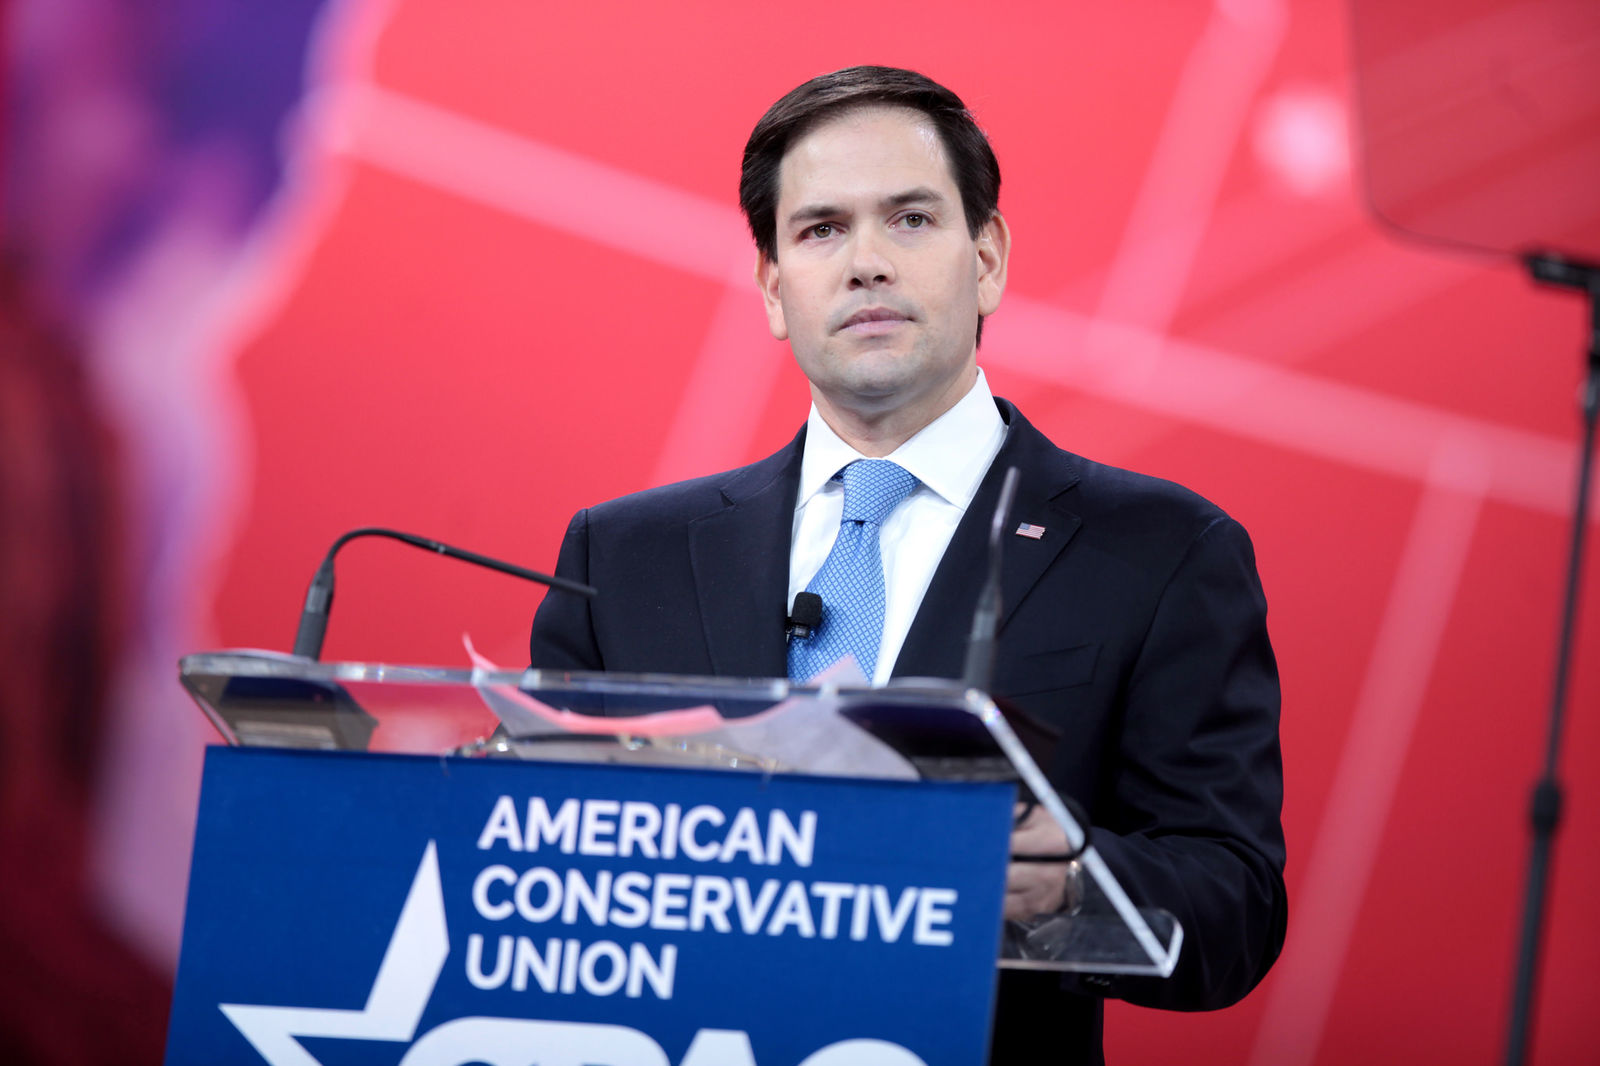 Marco Rubio actually understates how crazy it is to let ZTE go unchecked